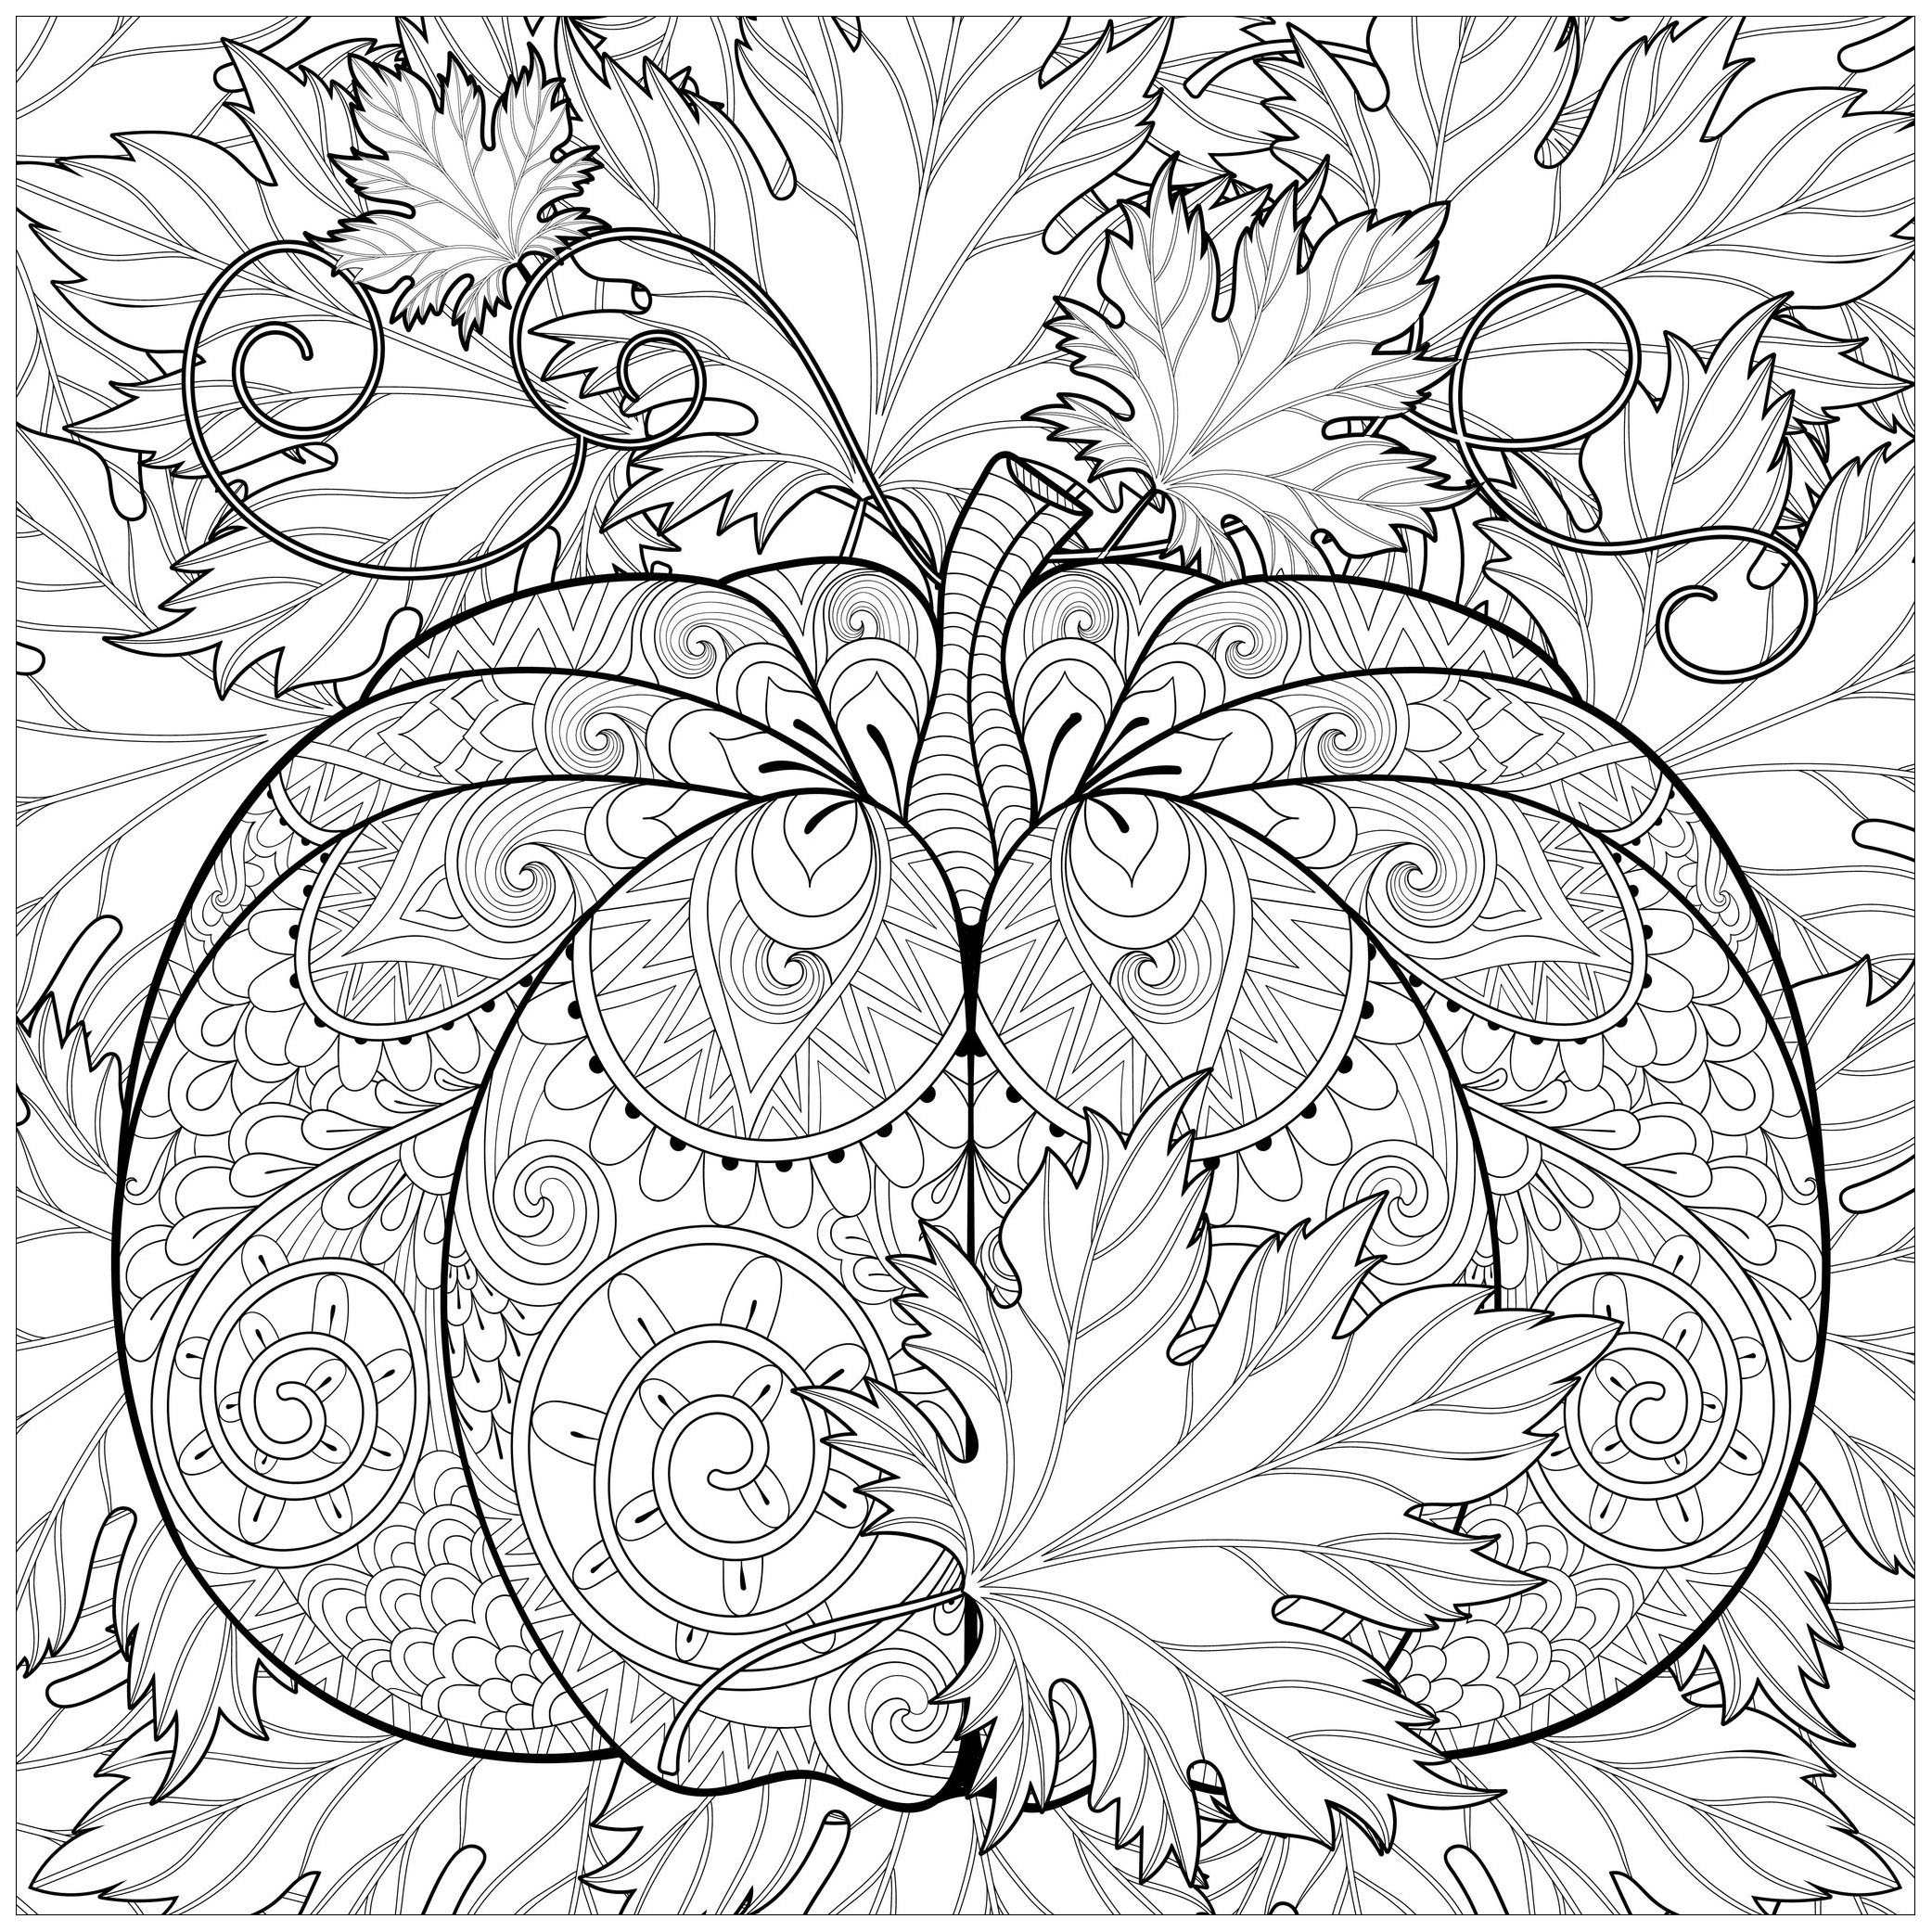 Decorated Pumpkin with Autumn leaves - Halloween Adult Coloring Pages